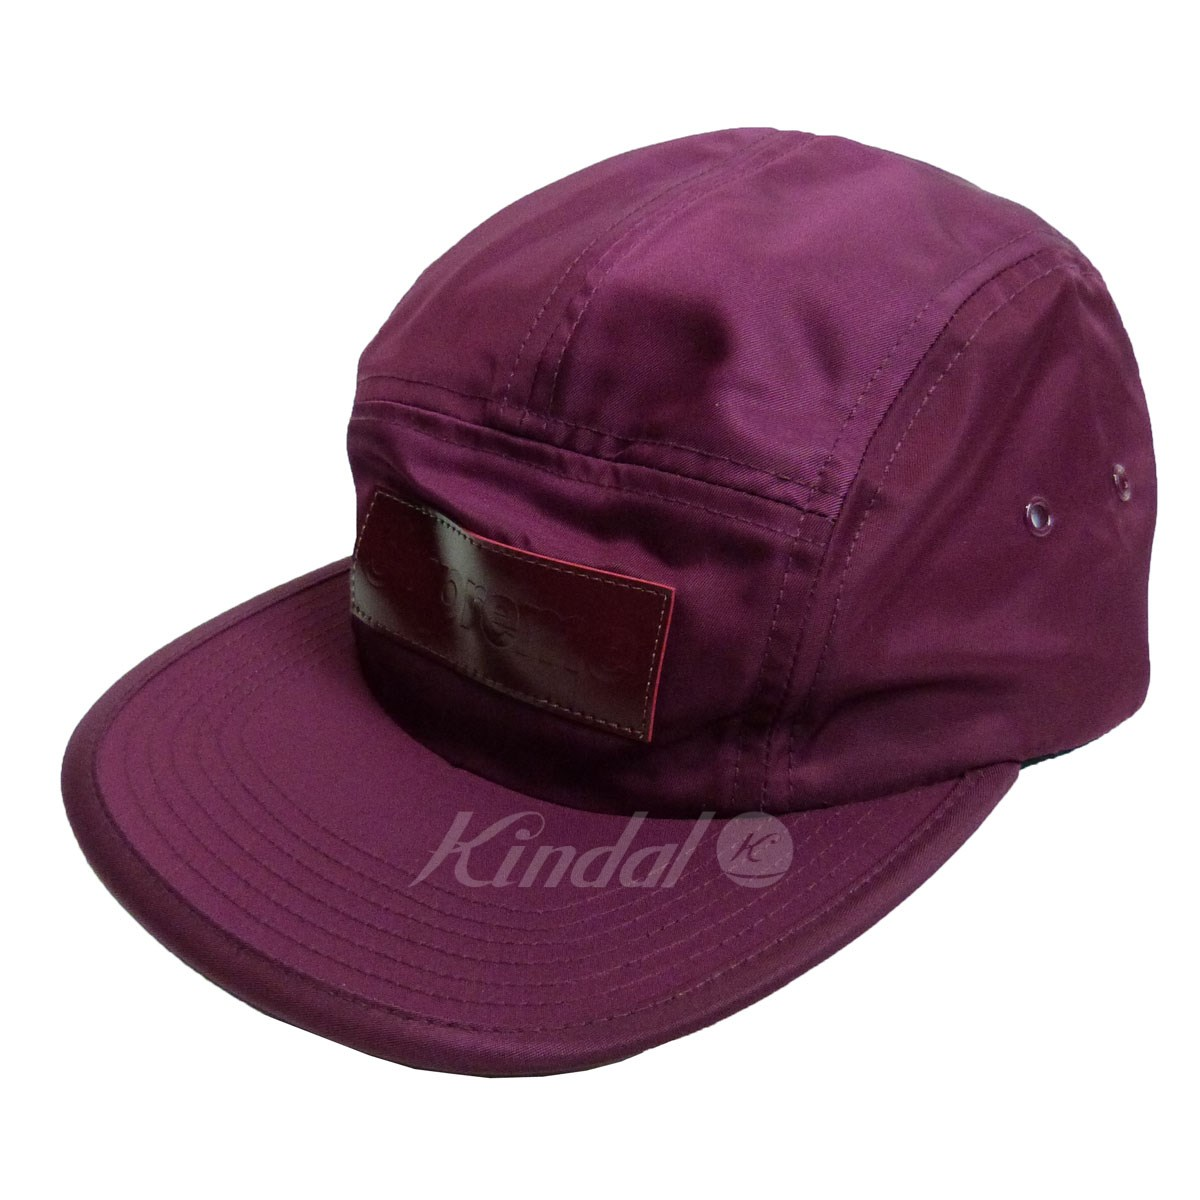 【中古】SUPREME 18AW 「Patent Leather Patch Camp Cap」 キャップ 【送料無料】 【063038】 【KIND1641】